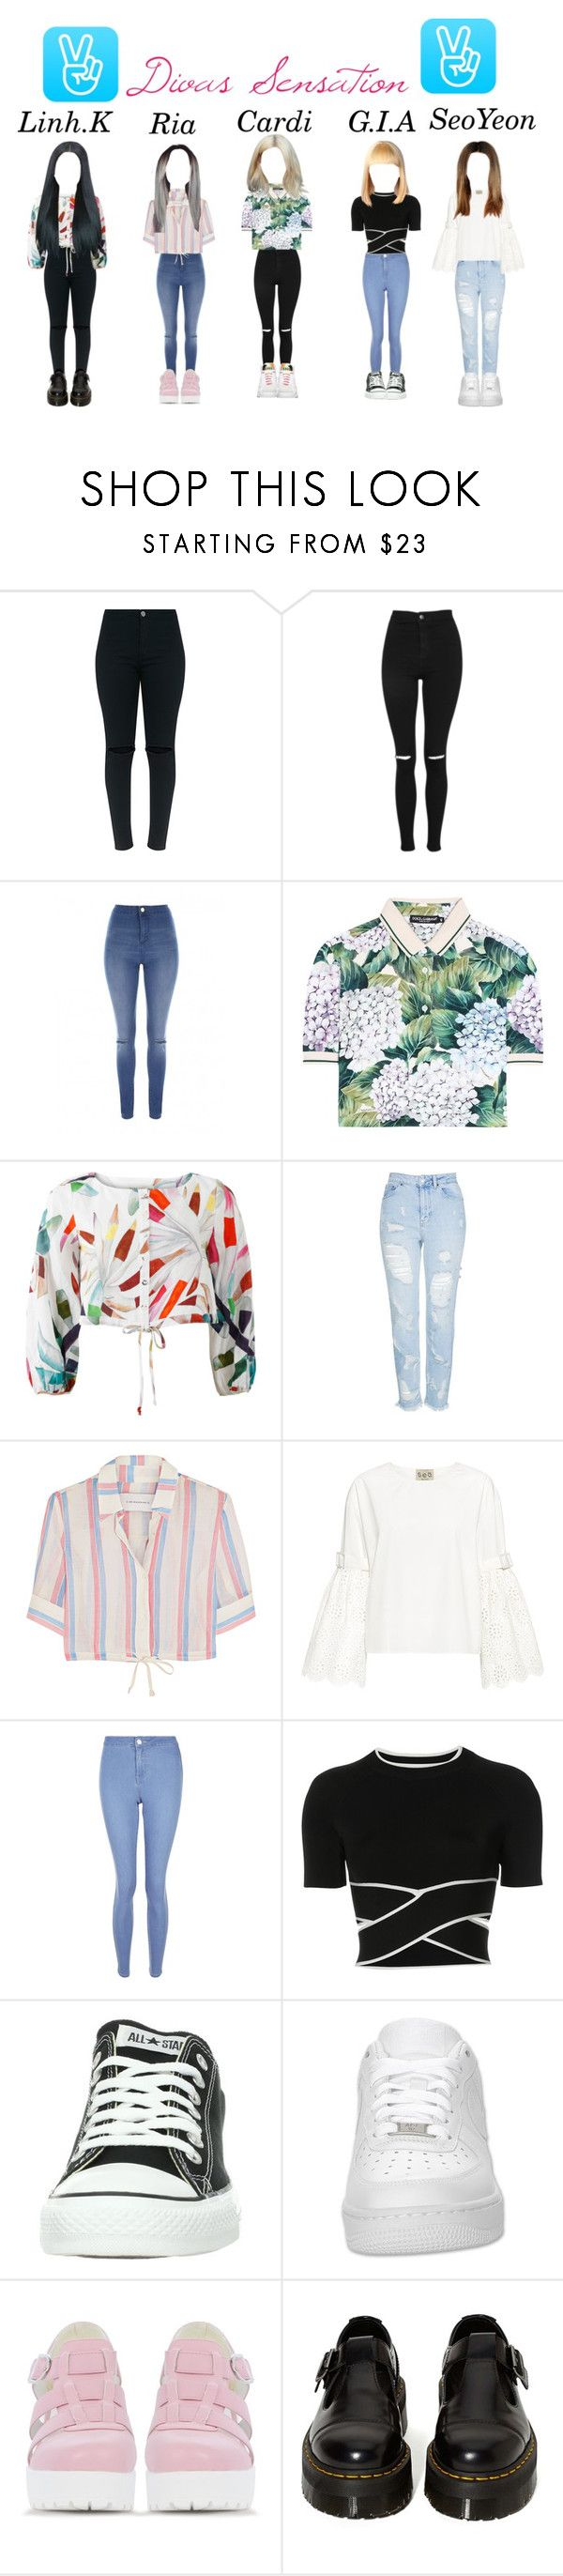 """""""Divas Sensation V-Live streaming"""" by ygentertaiment ❤ liked on Polyvore featuring Topshop, Jane Norman, Dolce&Gabbana, Mara Hoffman, Solid & Striped, Sea, New York, New Look, T By Alexander Wang, Converse and NIKE"""